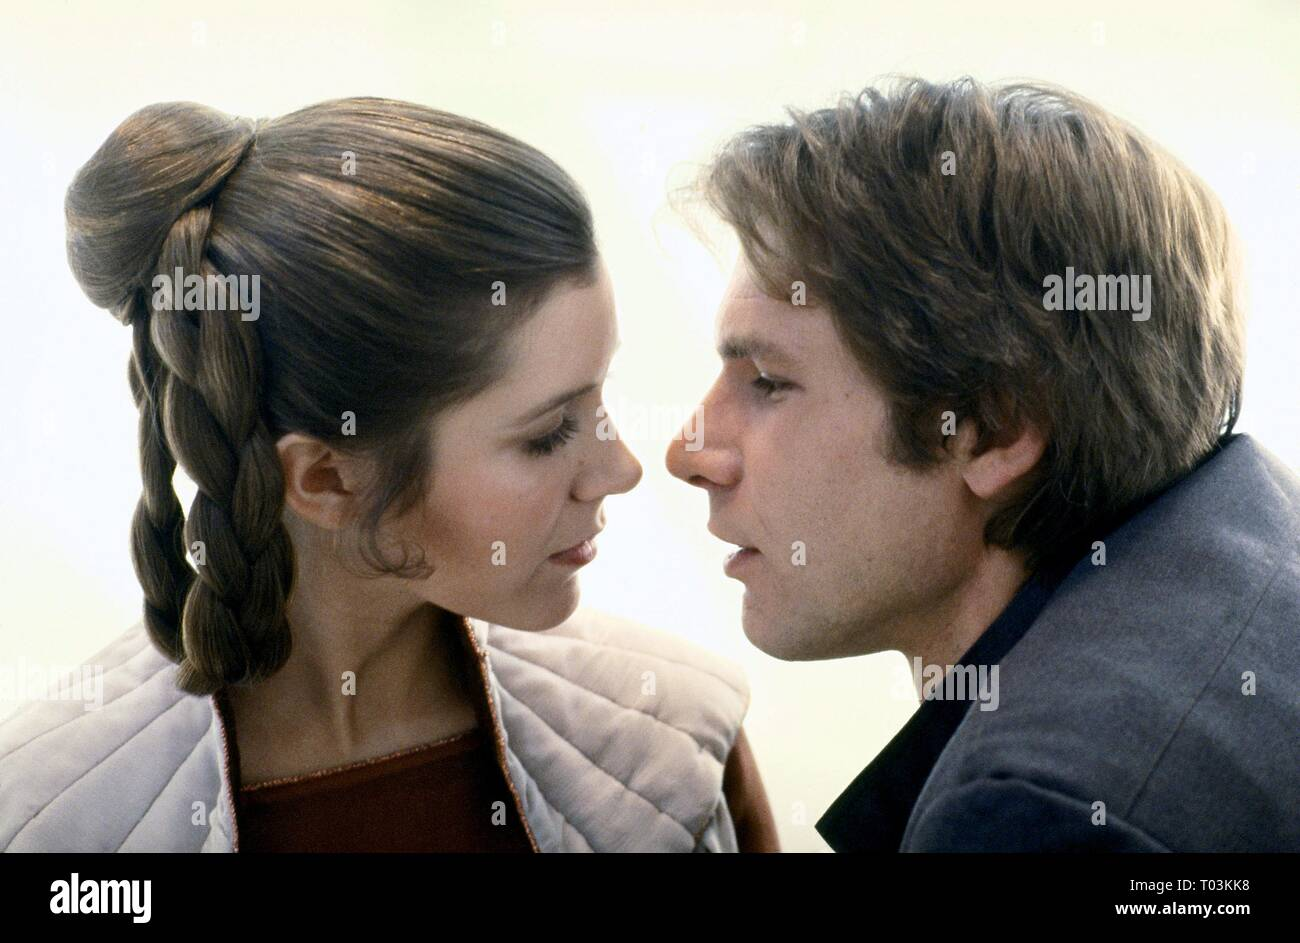 CARRIE FISHER, HARRISON FORD, STAR WARS: EPISODE V - THE EMPIRE STRIKES BACK, 1980 - Stock Image